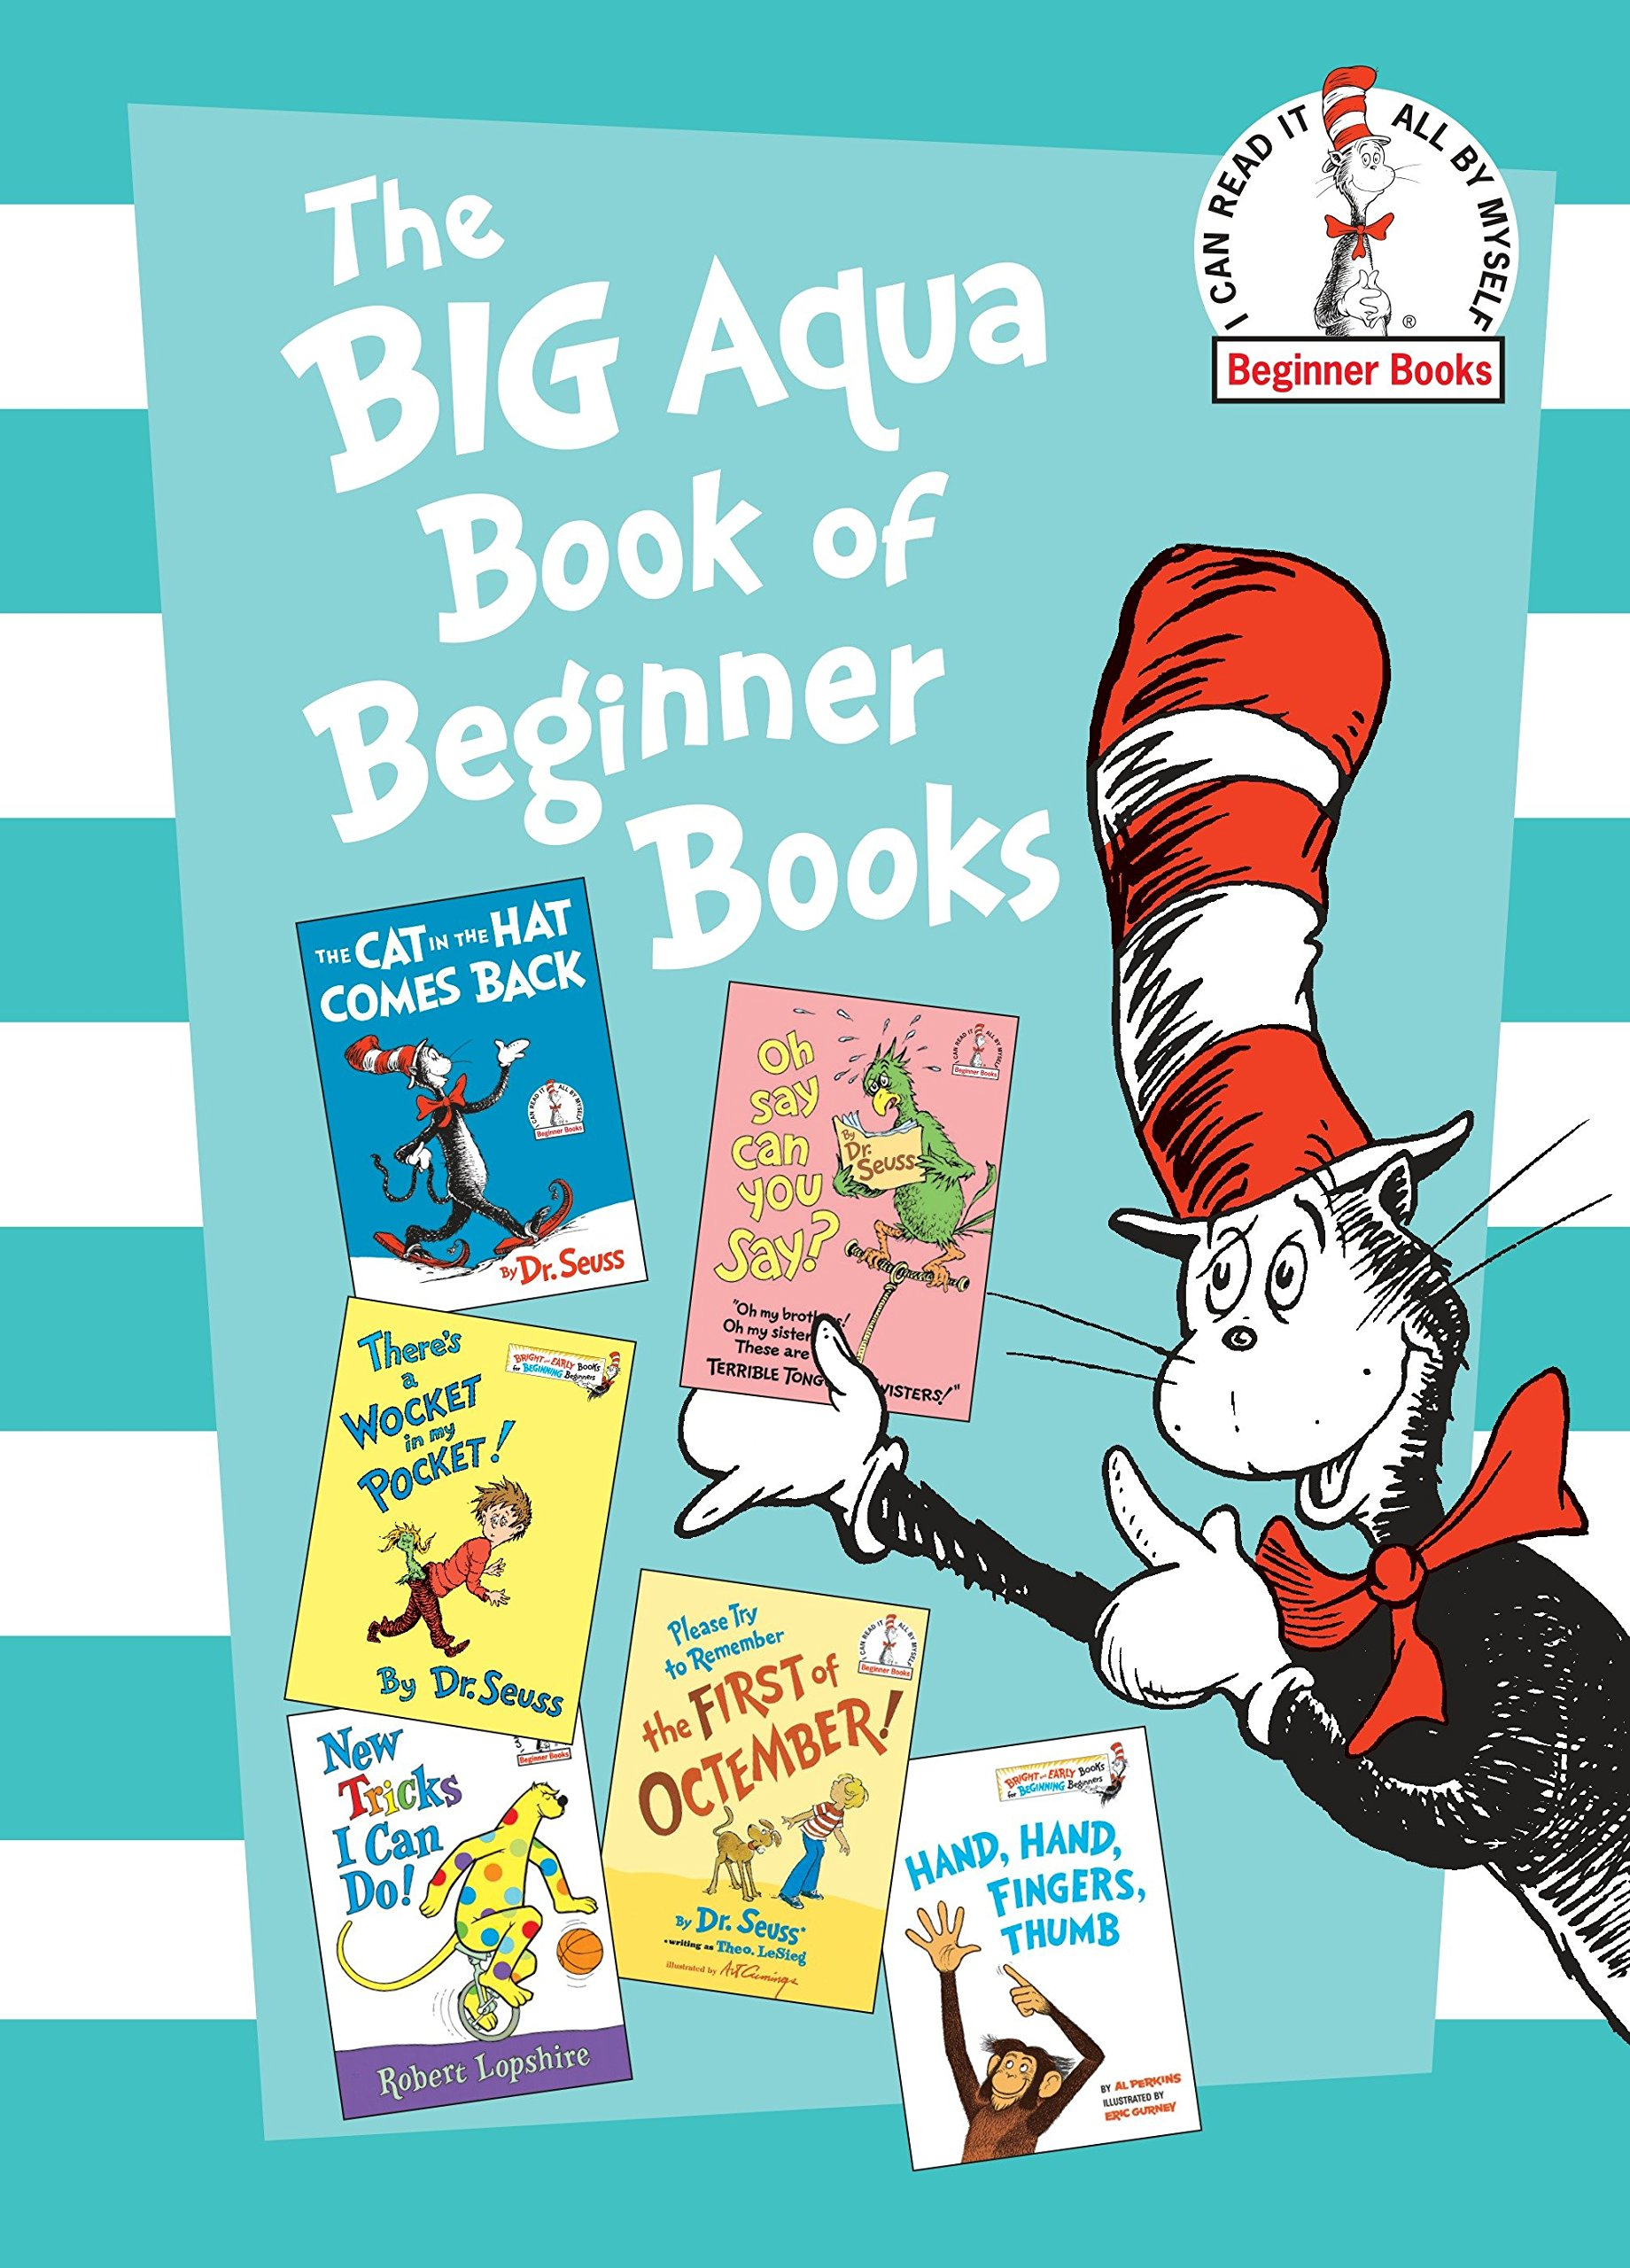 The Big Aqua Book of Beginner.